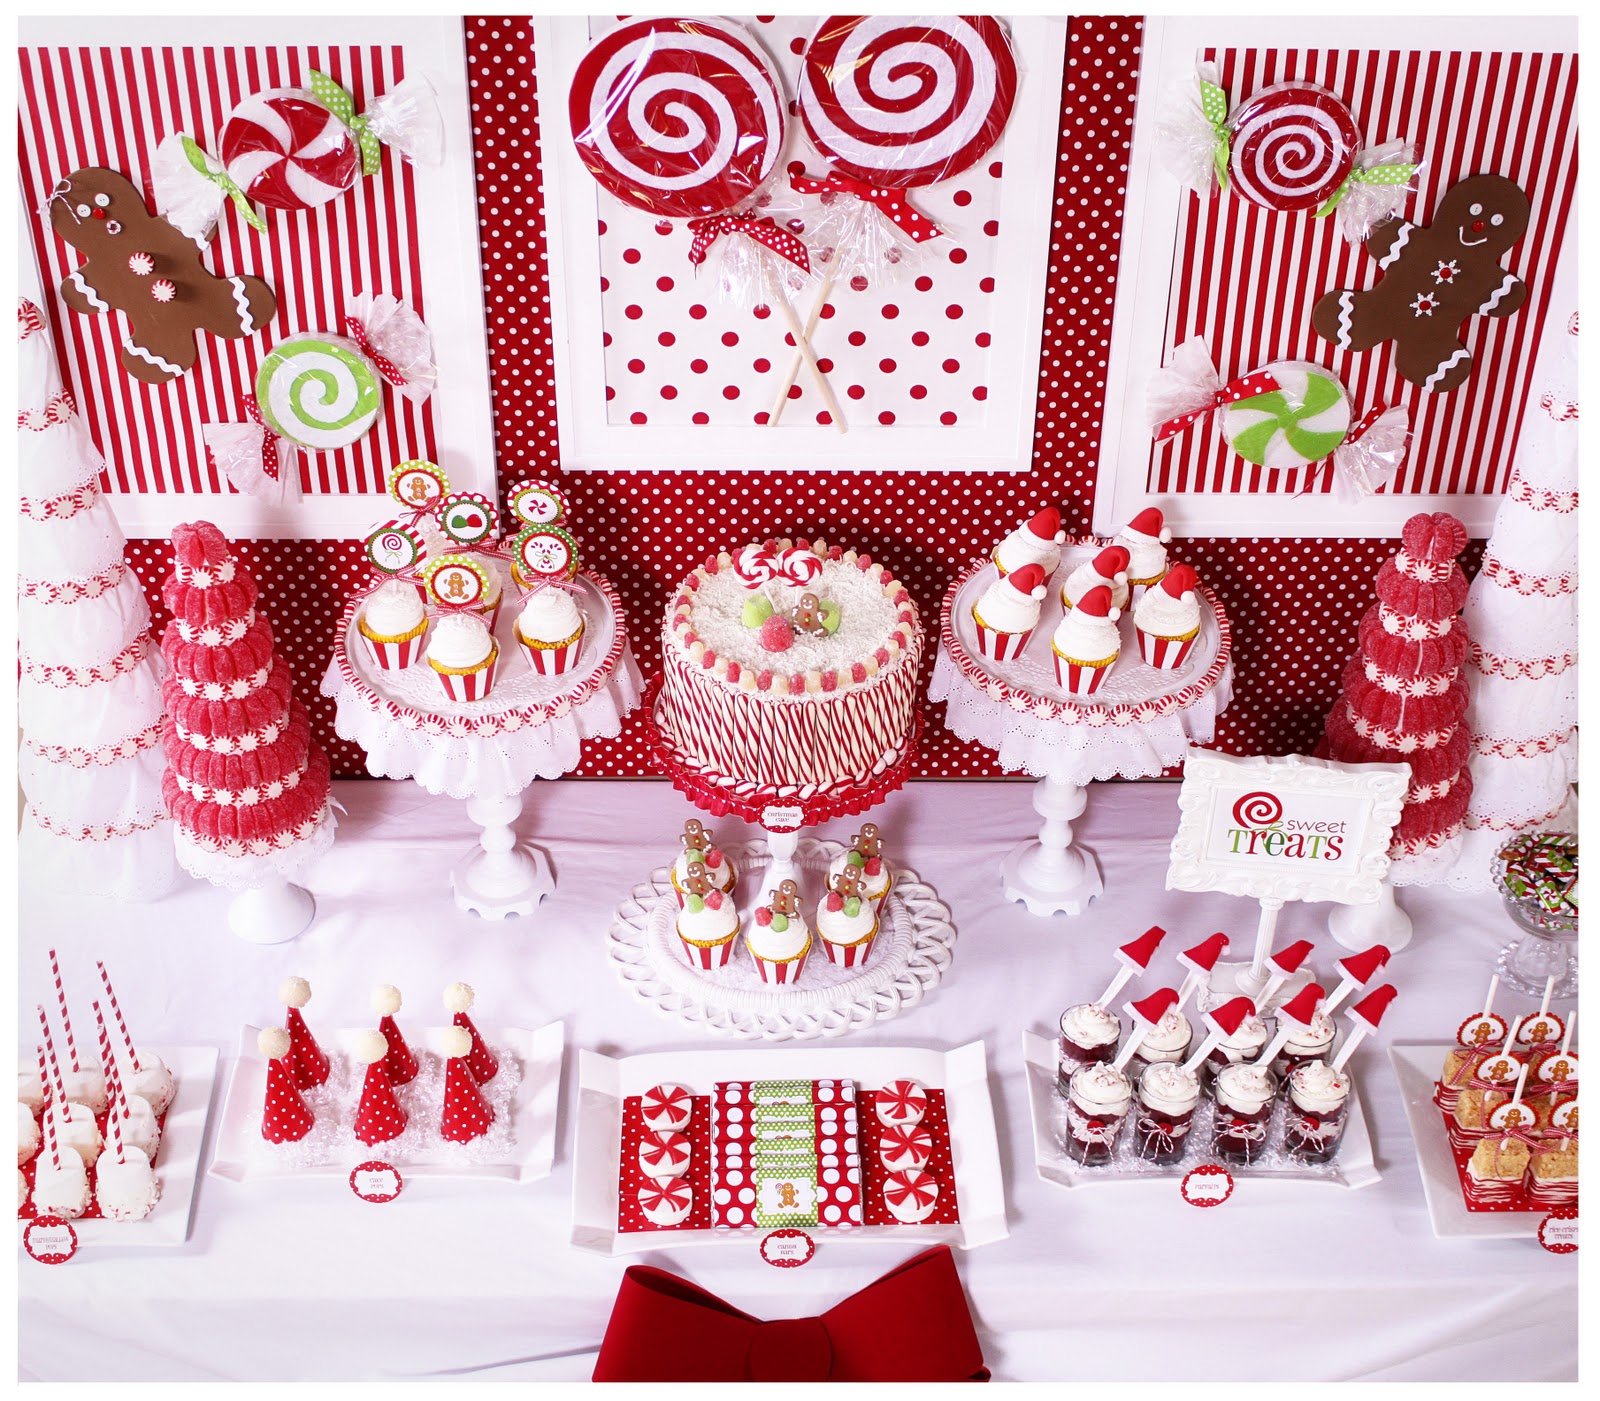 Fun Christmas Table Decorations: Kara's Party Ideas Candy Land Christmas Party